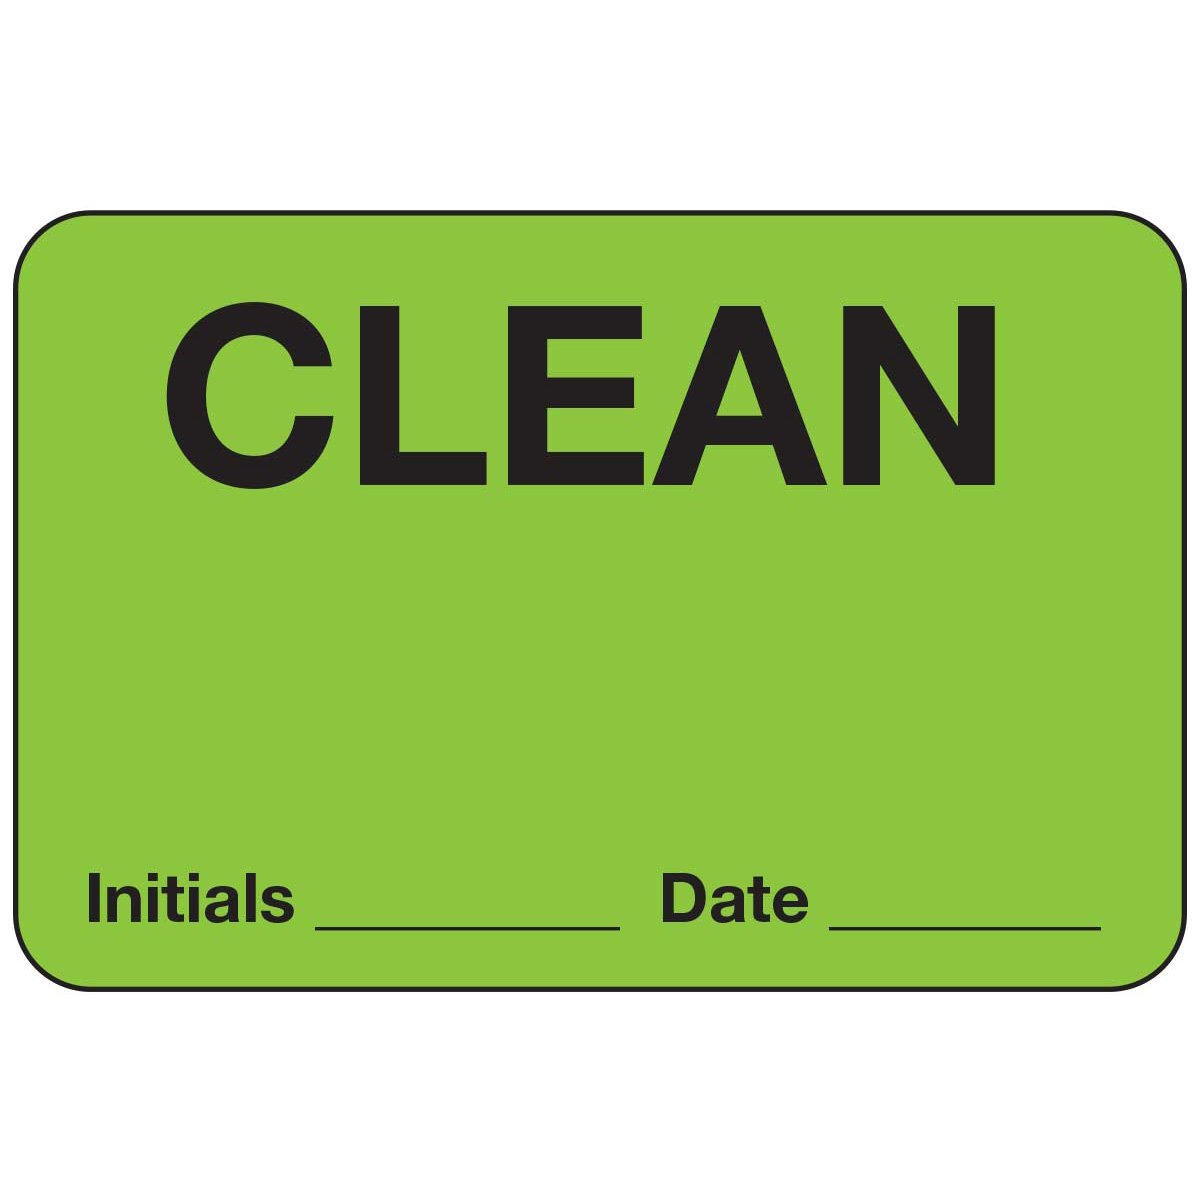 PDC Healthcare 59705743 Paper Label, Fluorescent Green Label with Black Text, ''Clean Initials Date'', 4'' Width x 2.125'' Length (Roll of 500)